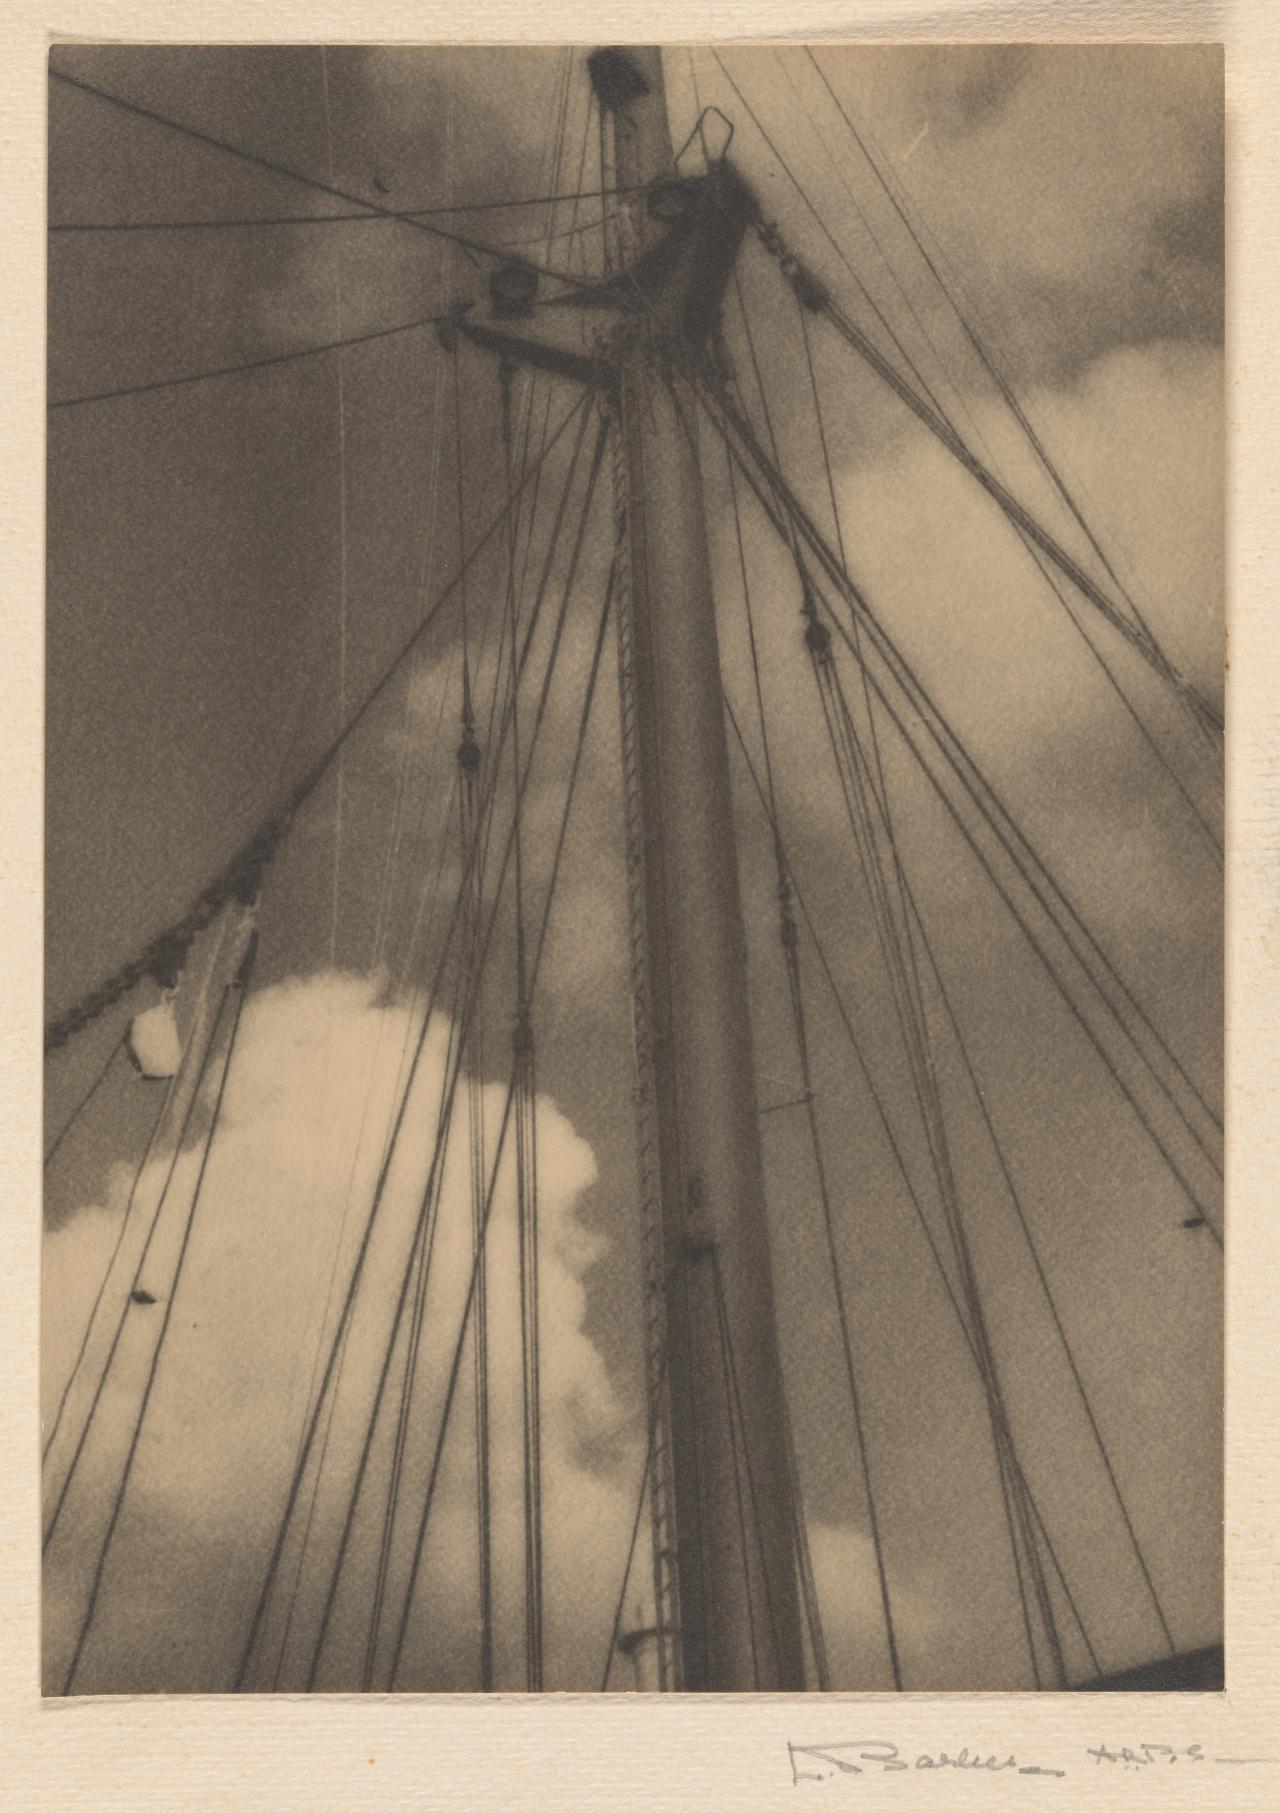 Mast and clouds, P & O, Australia